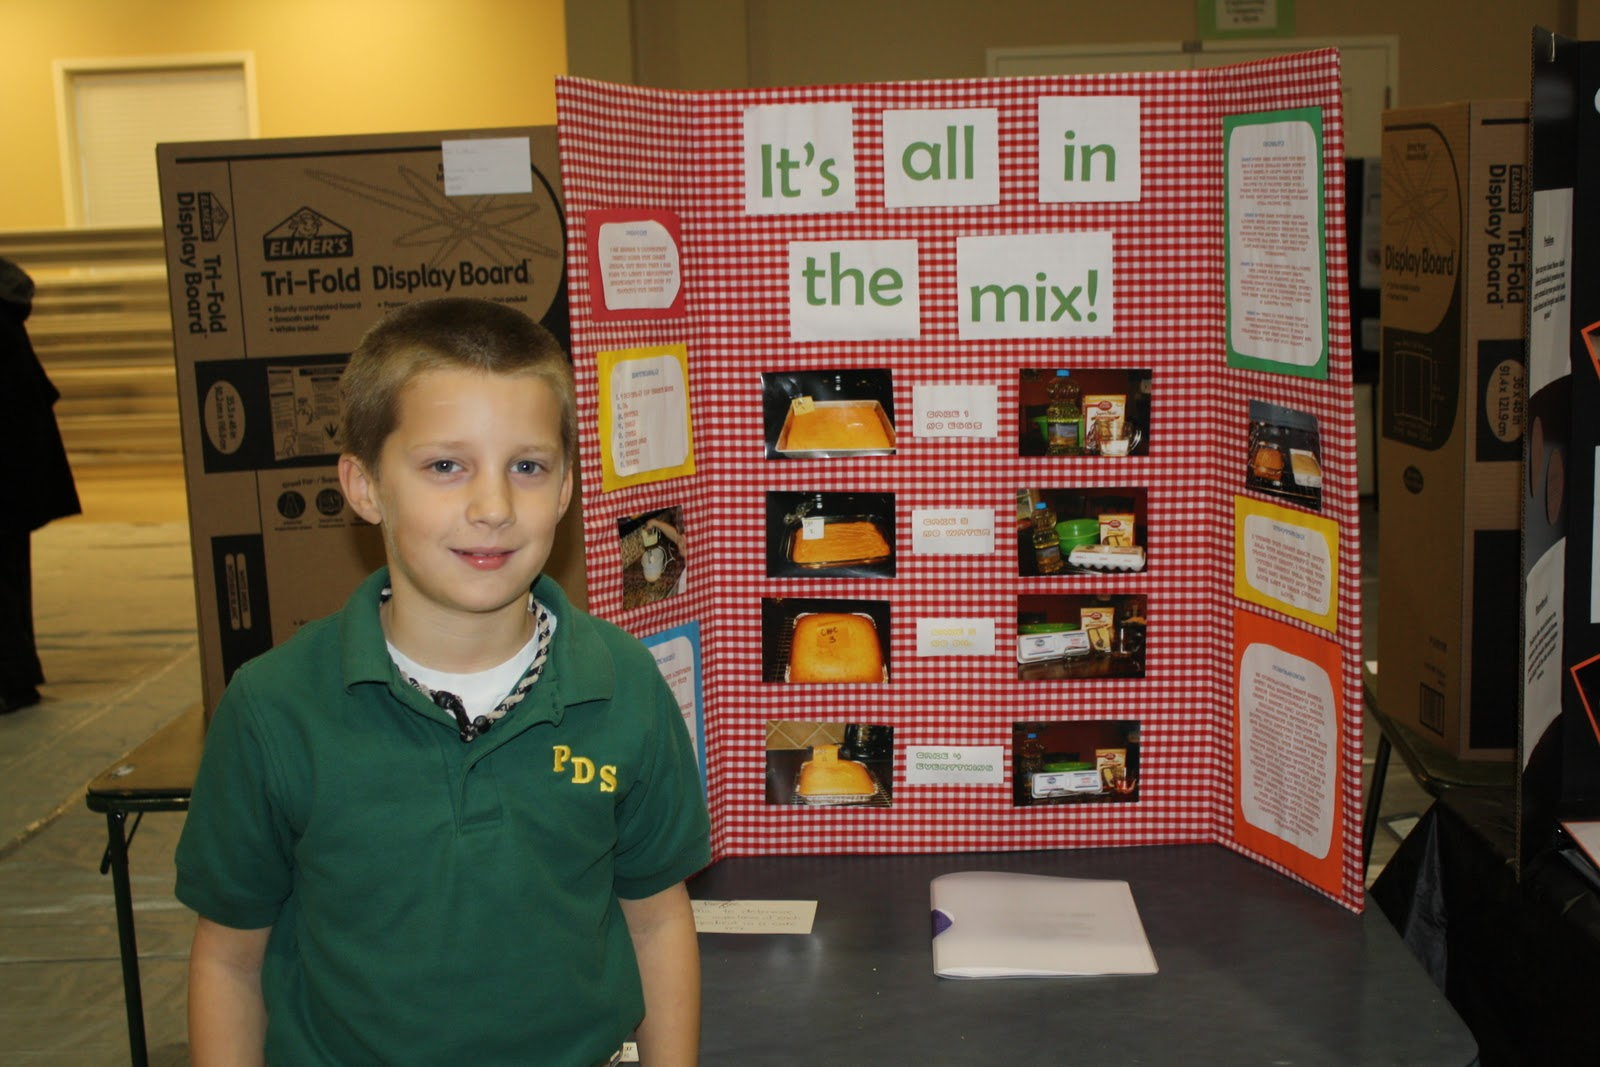 fourth grade science fair projects Get ideas for 4th grade science fair projects these are experiments and topics suitable for elementary school level science fair projects.